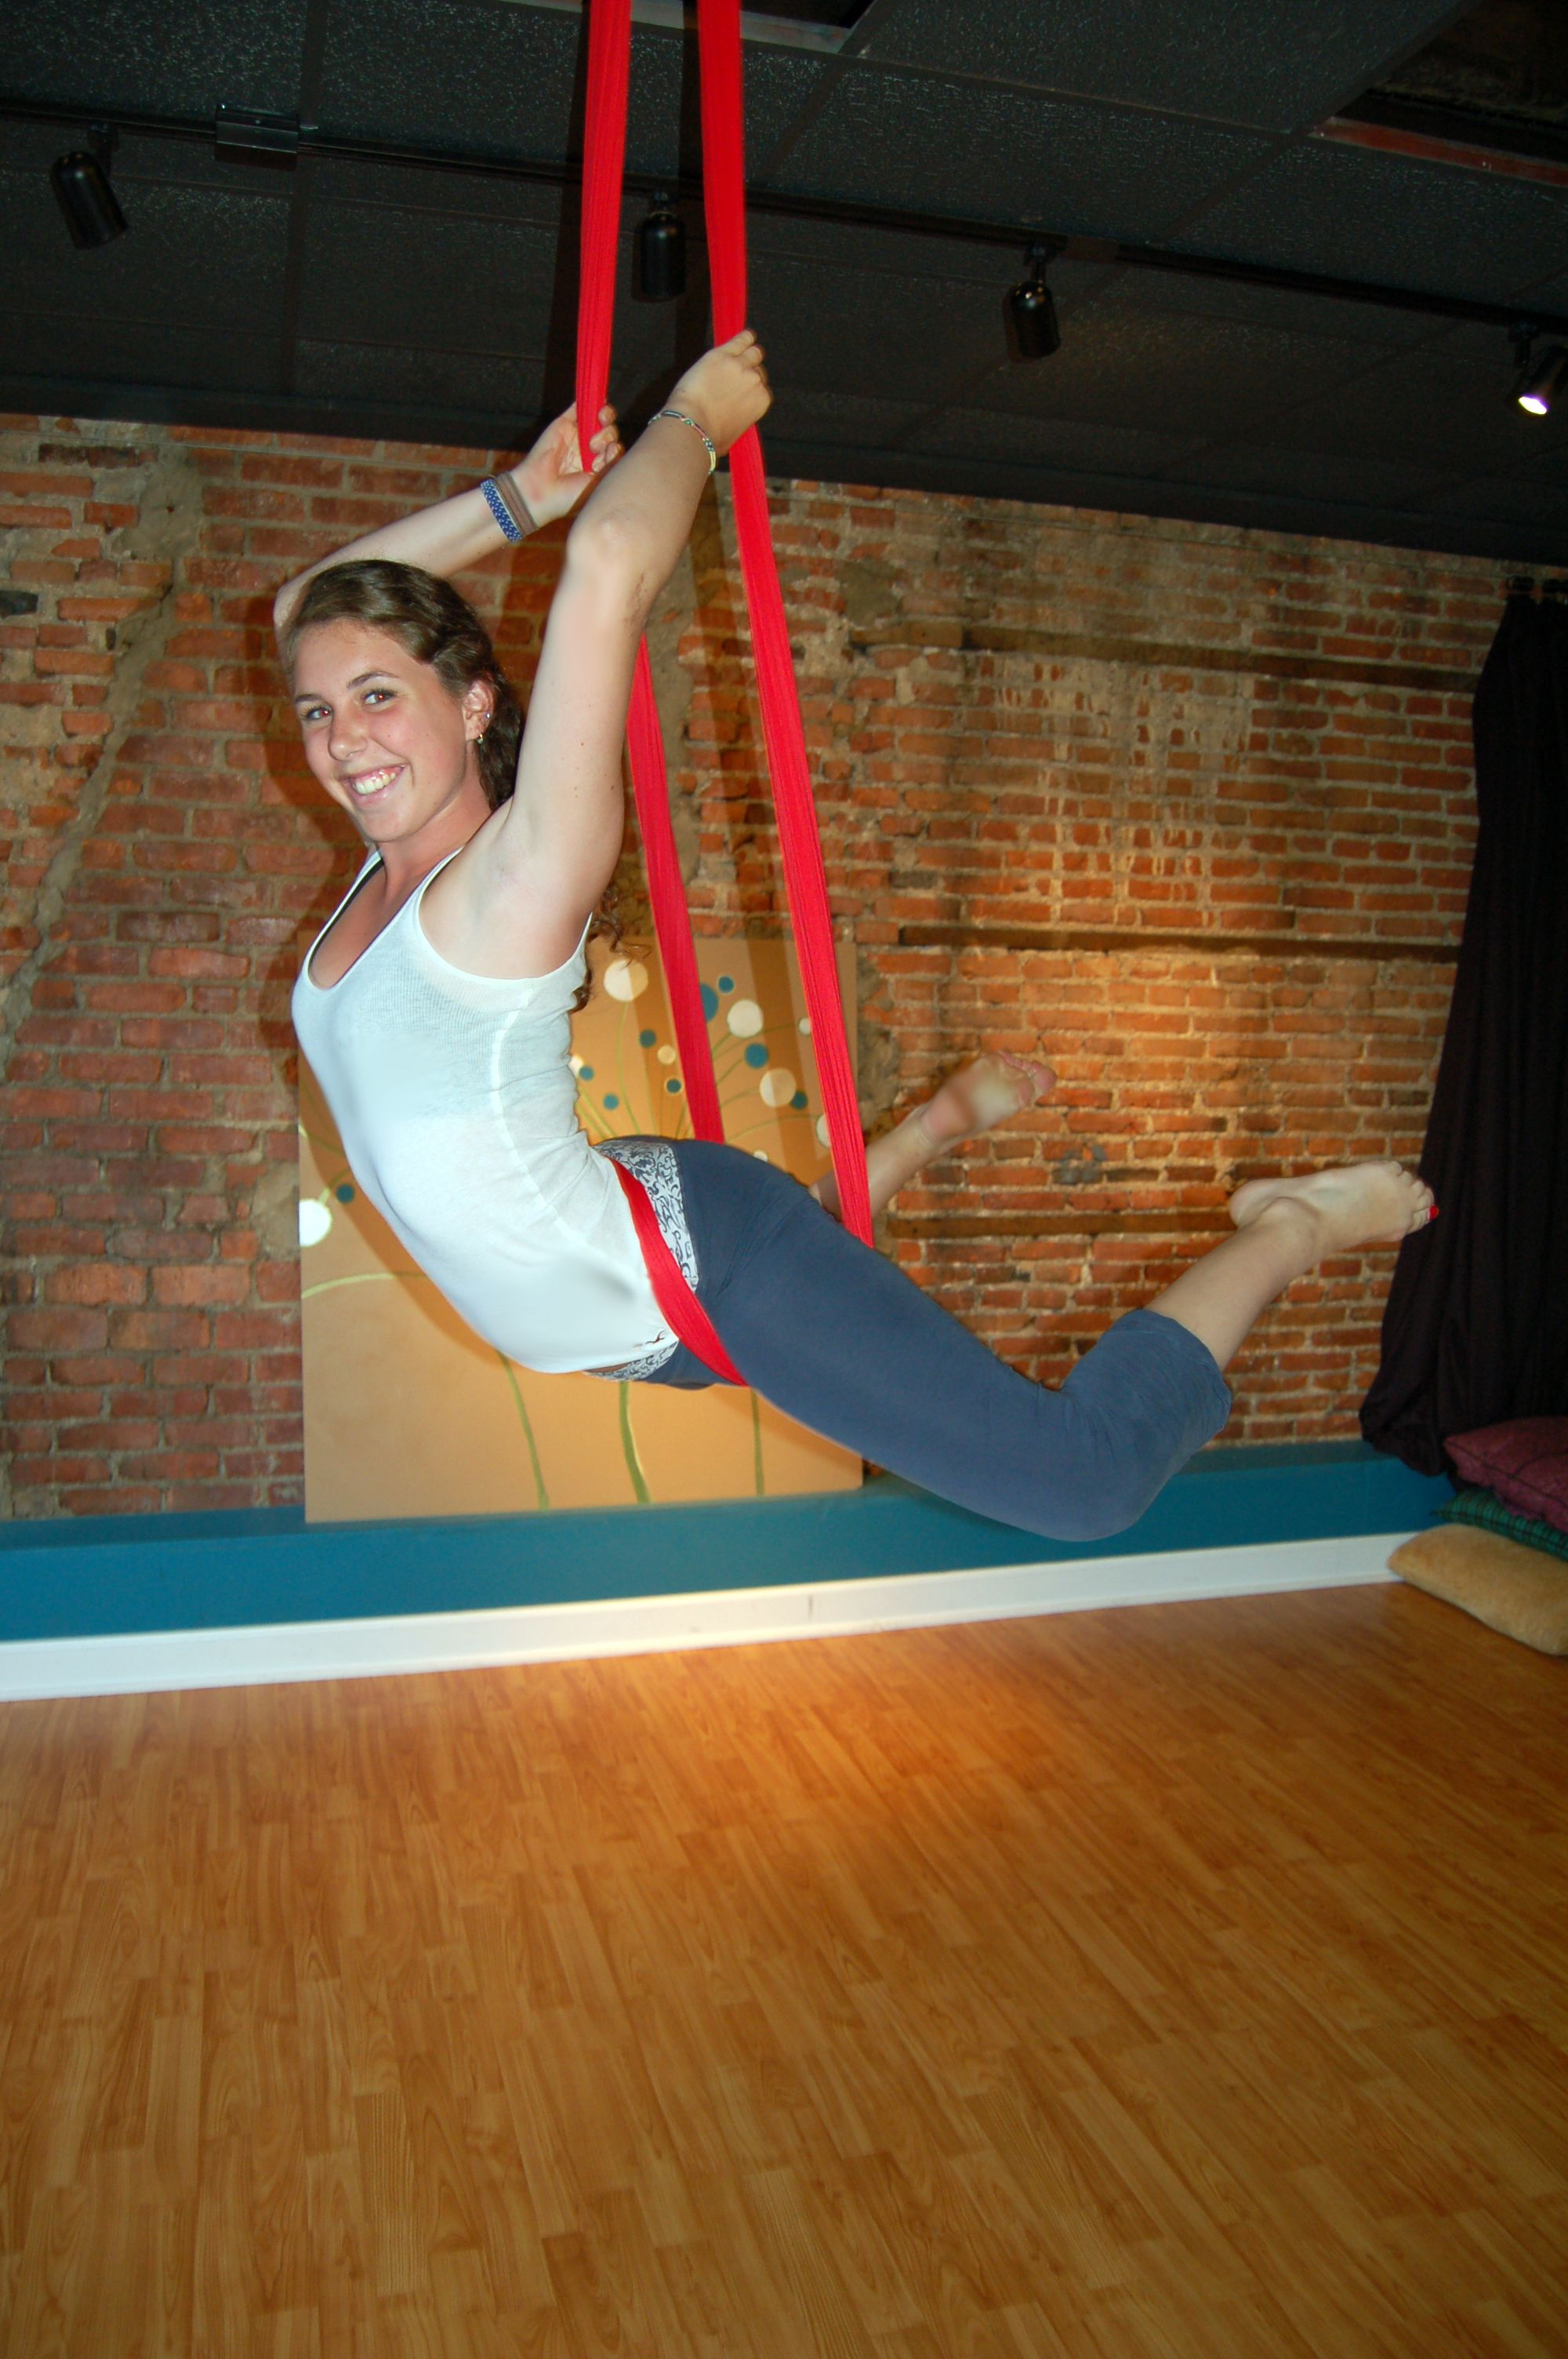 Aerial Sling Aerial Hammock Moves About To Do A Drop From The Diaper Wrap Aerial Yoga Aerial Fitness Aerial Silks